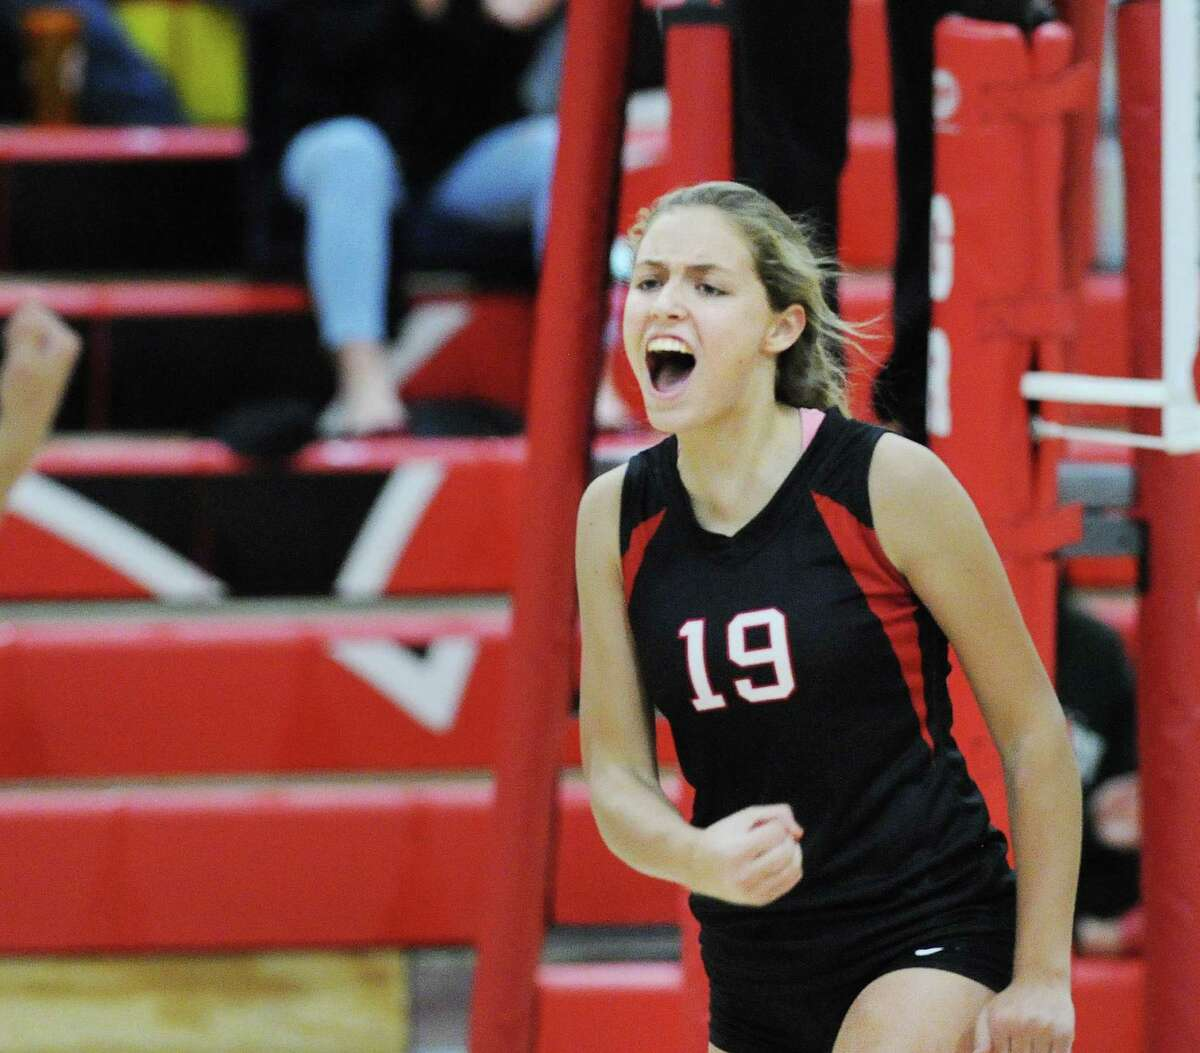 Fairfield Warde's Clare Edminster (#19) reacts after a winning point during the girls high School volleyball match between Greenwich High School and Fairfield Warde High School at Greenwich, Conn., Friday, Oct. 19, 2018.